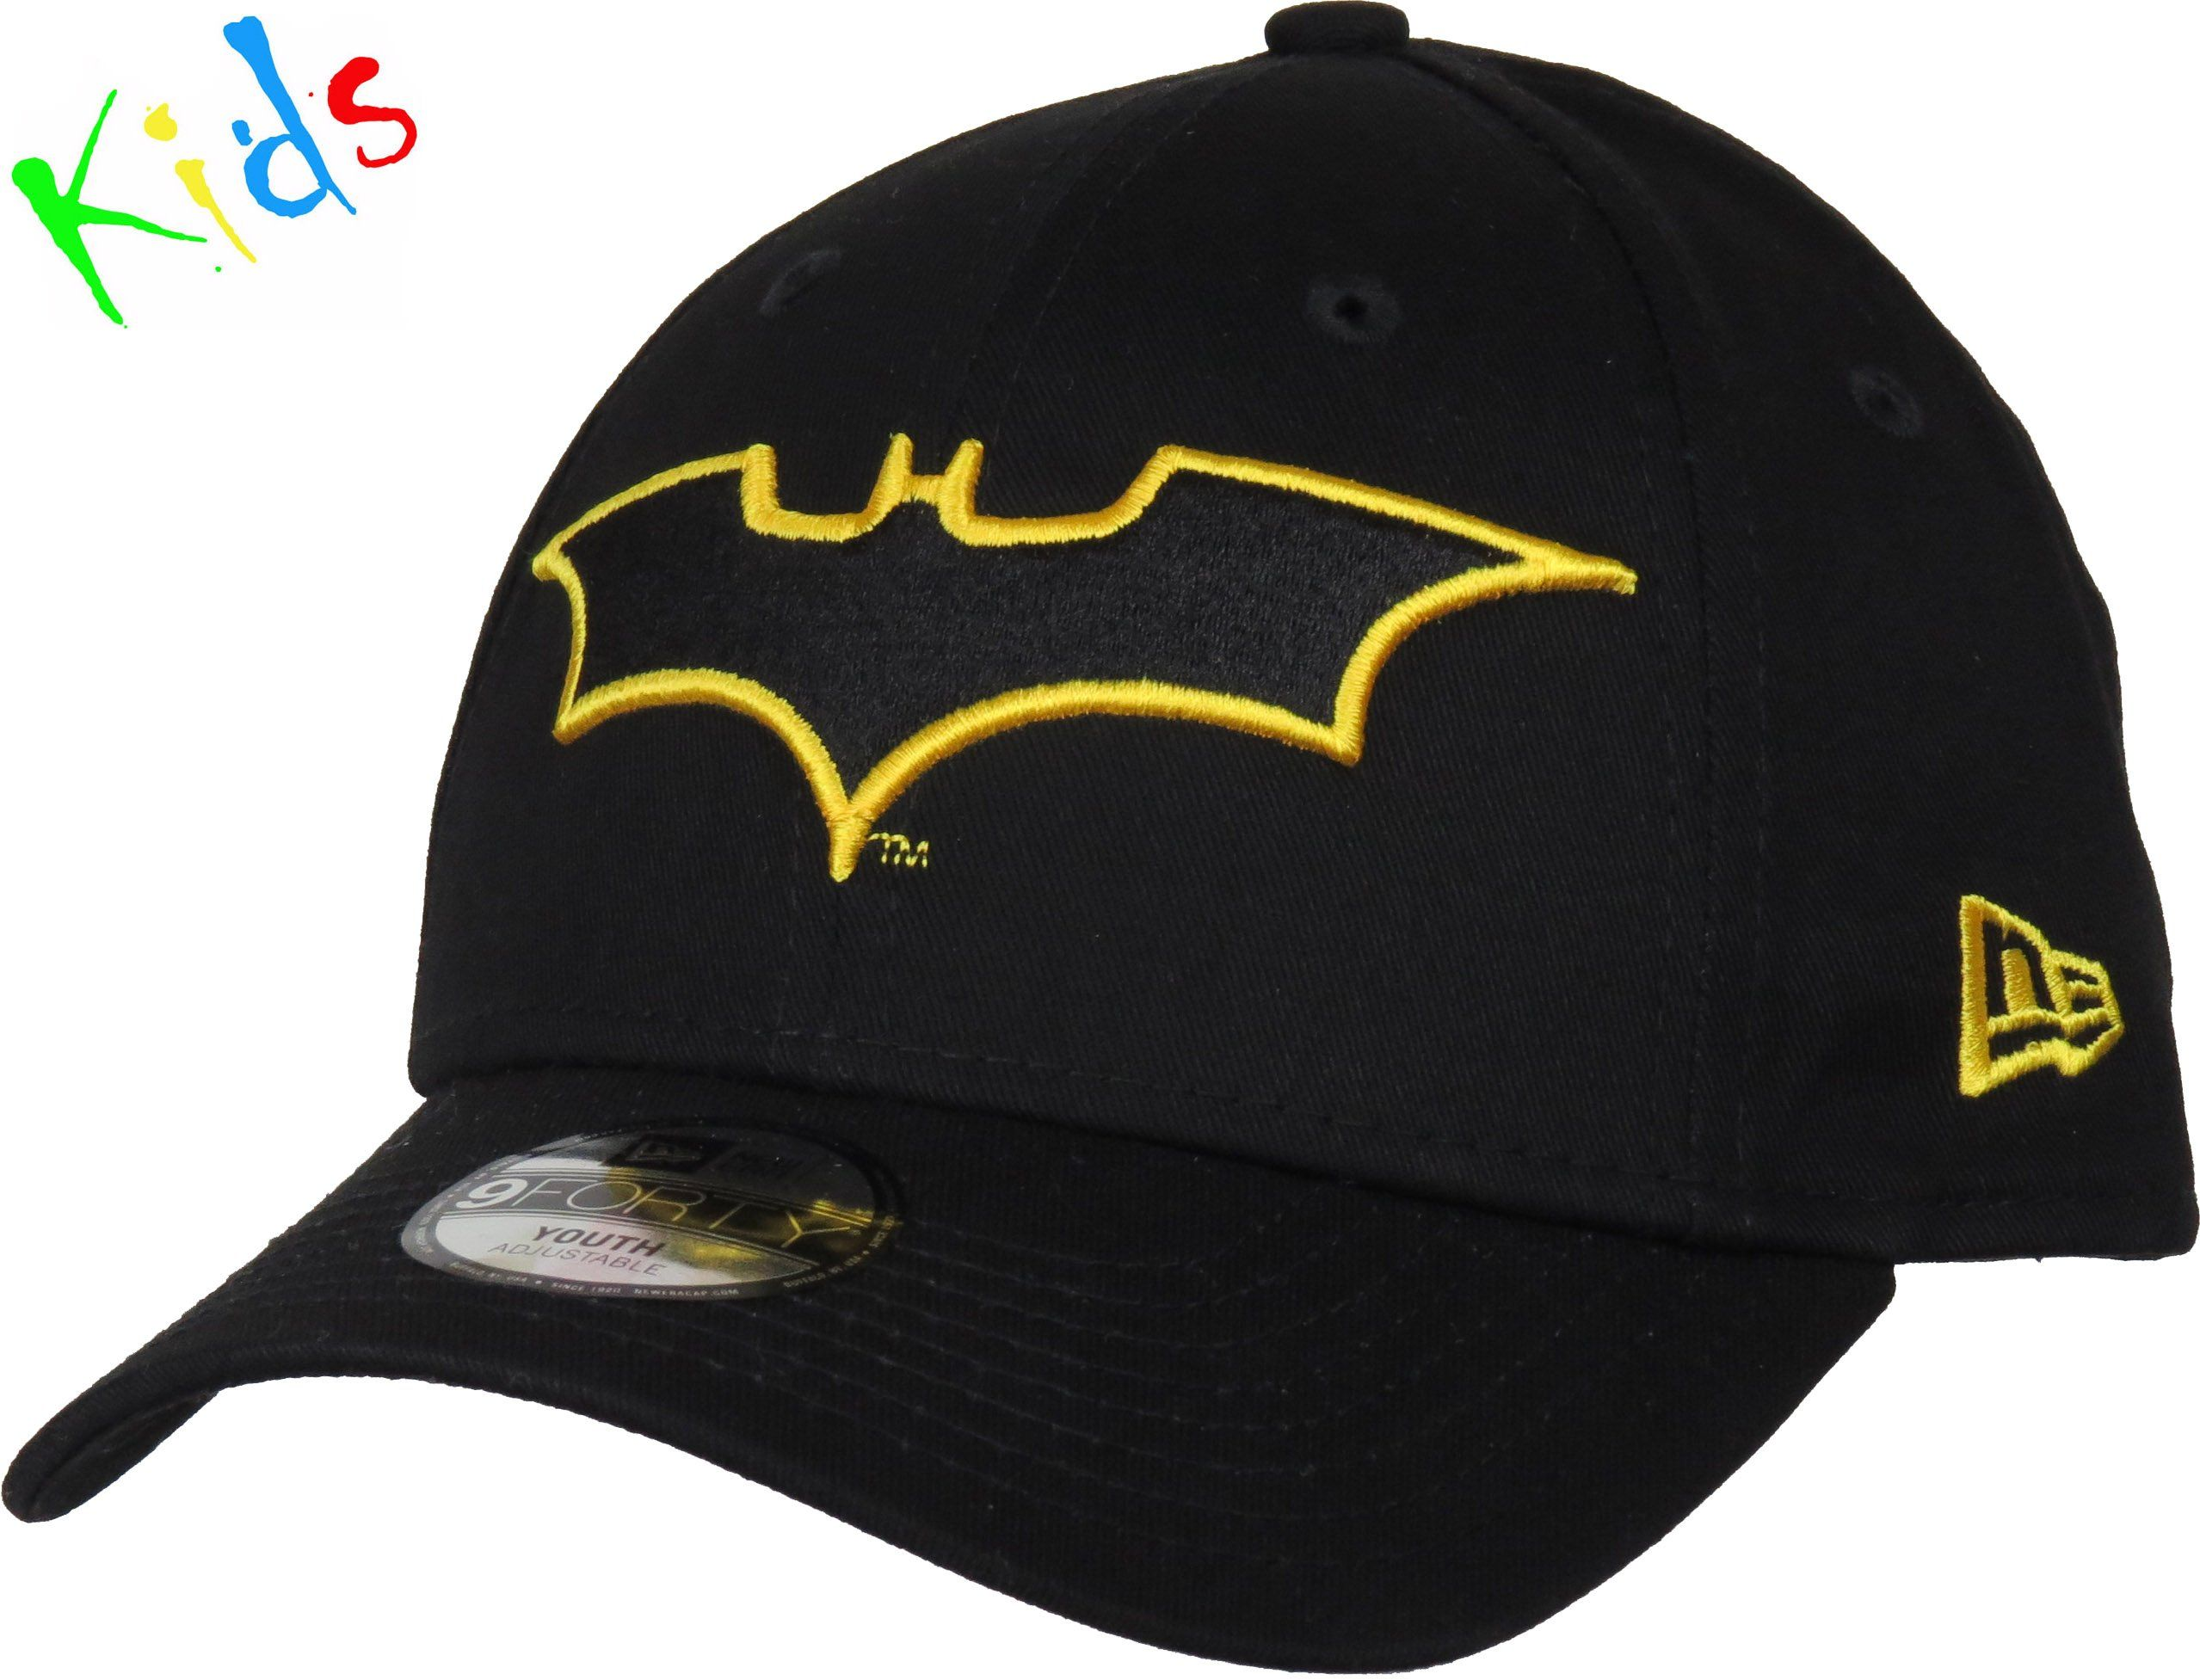 6587841416d New Era 940 Kids Character Outline Adjustable Superhero Cap. Black with the  Batman Outlined front